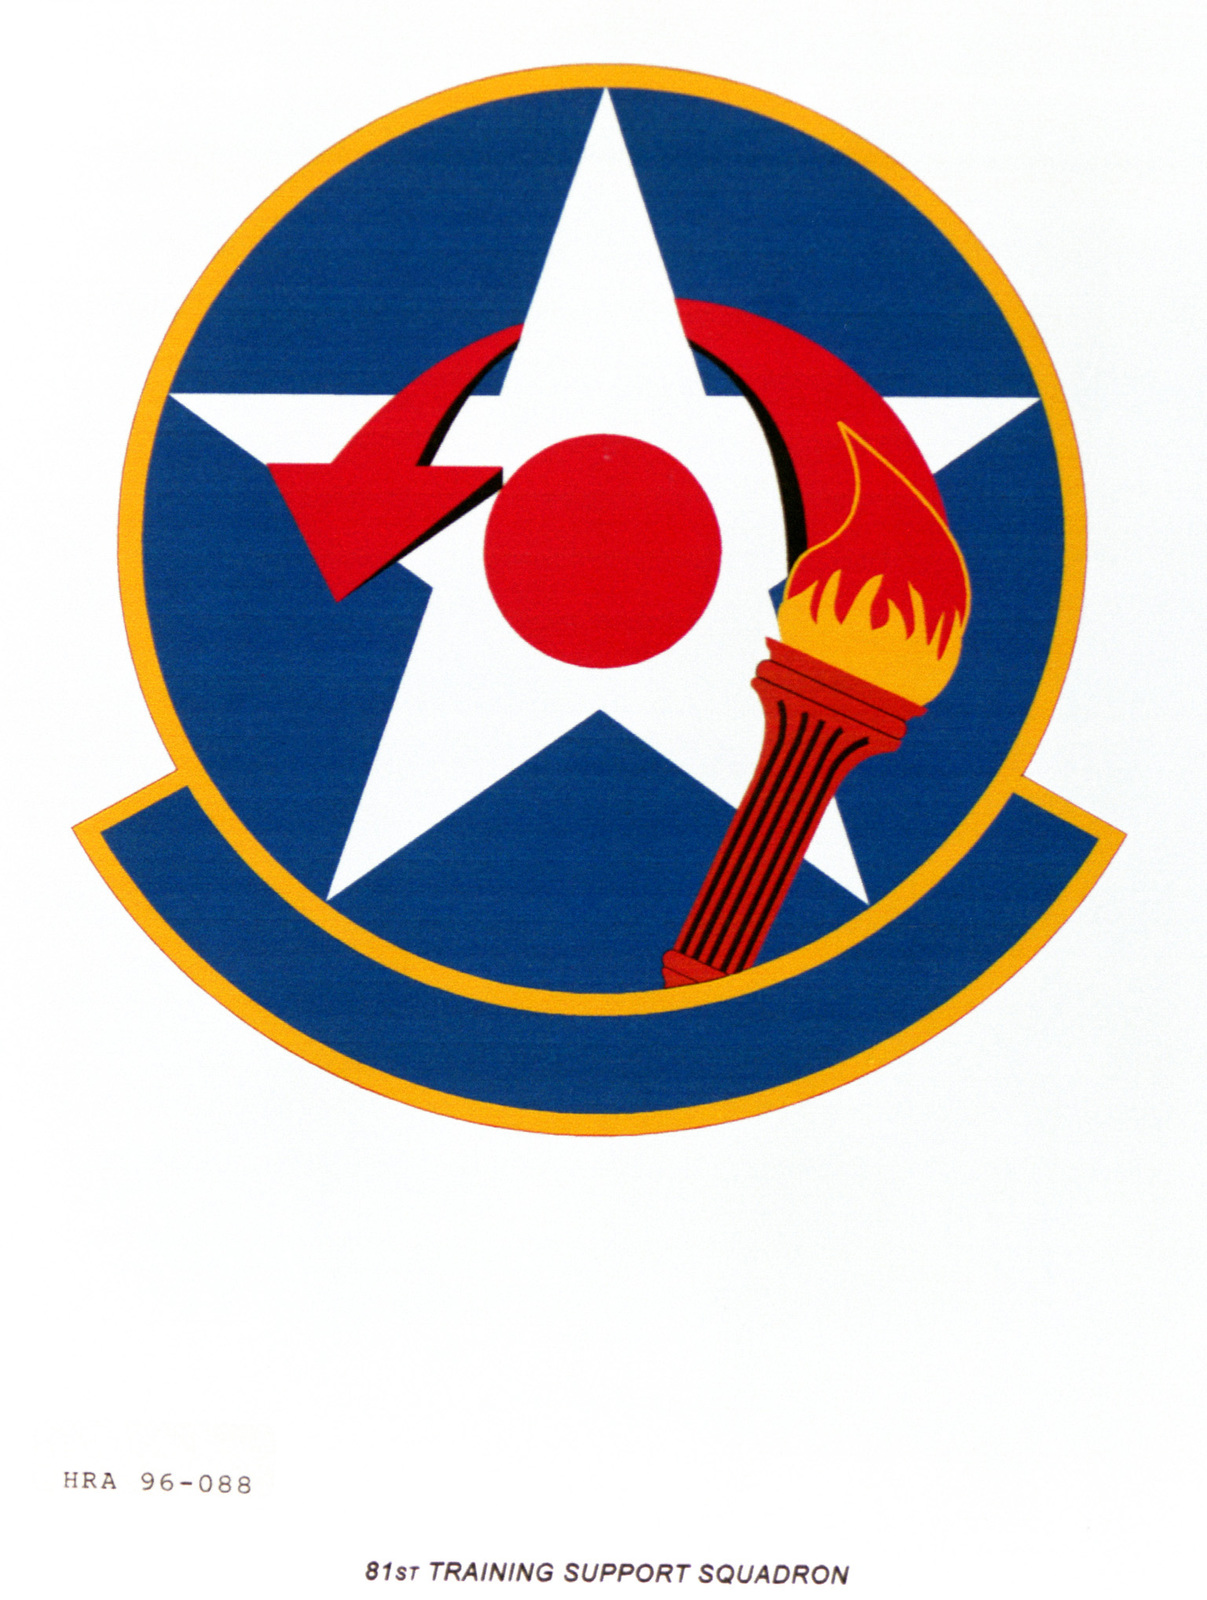 Air Force Organizational Emblem. 81st Training Support Squadron Exact Date Shot Unknown